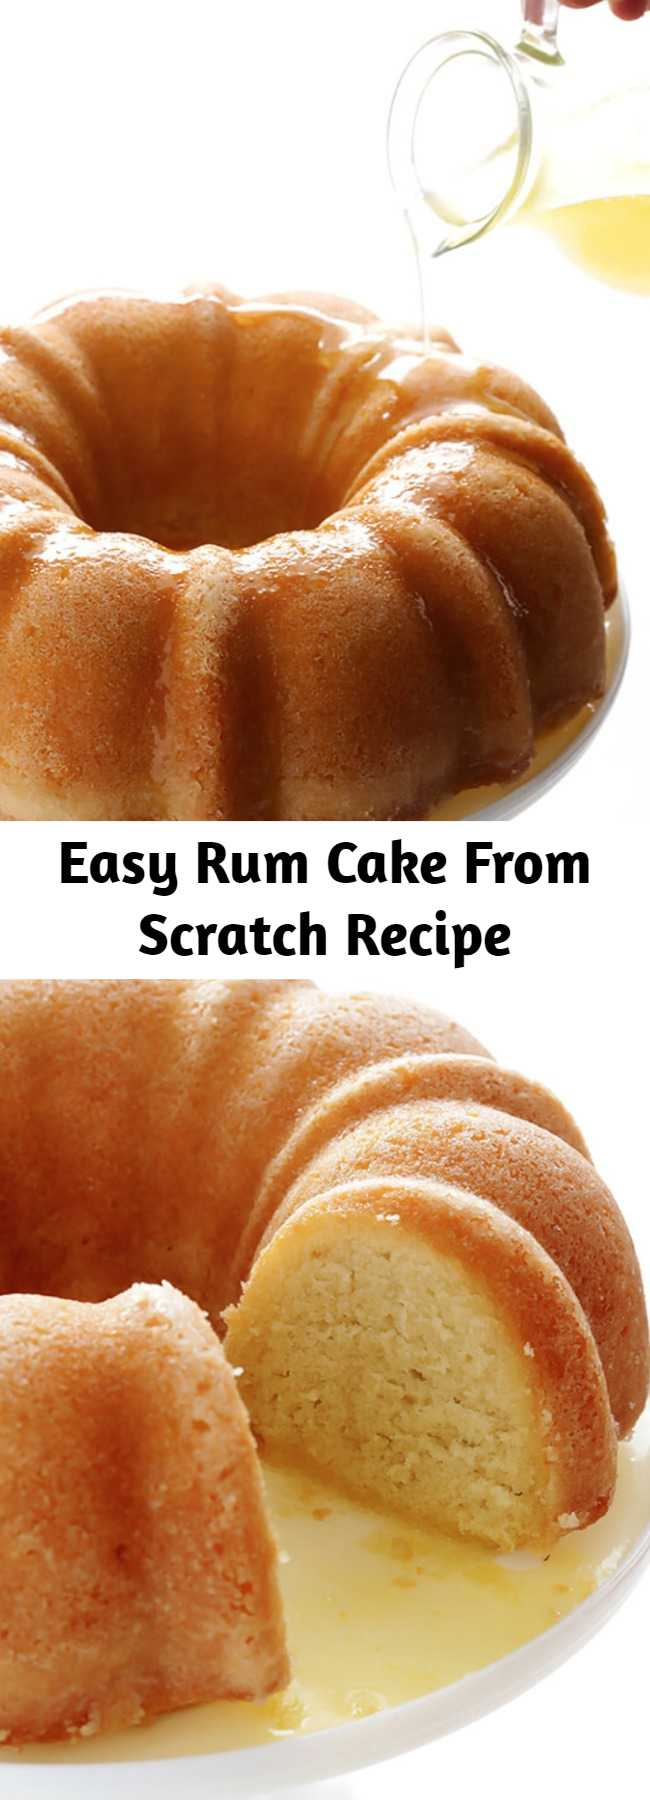 Easy Rum Cake From Scratch Recipe - This rum cake recipe is made from scratch, with rum baked into a delicious yellow bundt cake and drizzled with a butter-rum sauce.